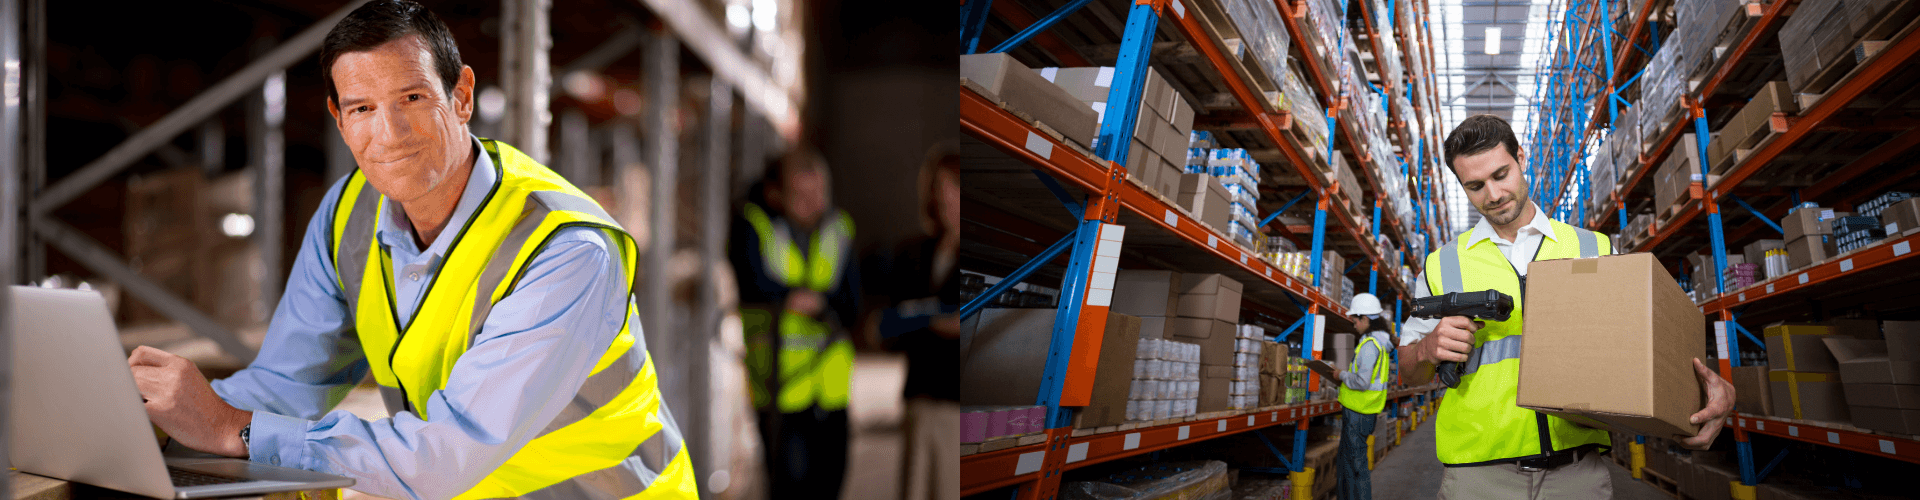 warehouse management system, warehouse management, warehouse management software, warehousing and distribution, managing warehouse inventory, managing warehouse, warehouse efficiency,